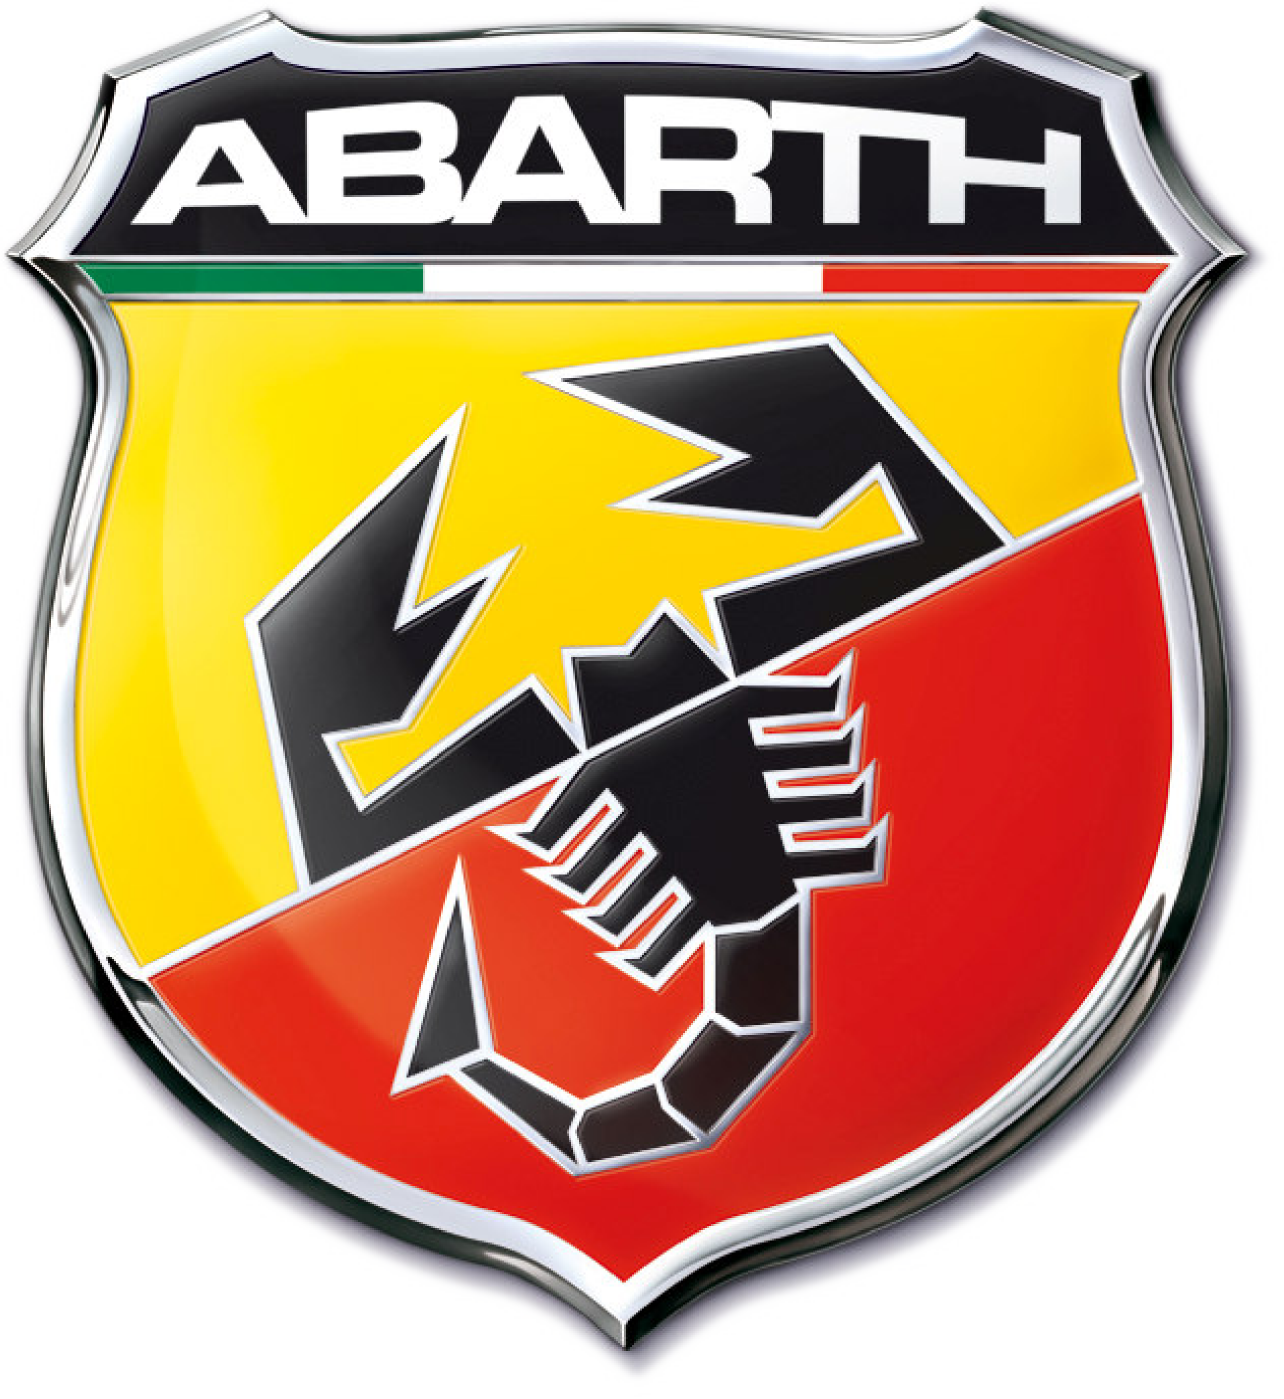 Abarth Is A Subsidiary Of Fiat Chrysler Automobiles And Widely Known For Producing Performance Kits Accessories Other Italian Manufacturers